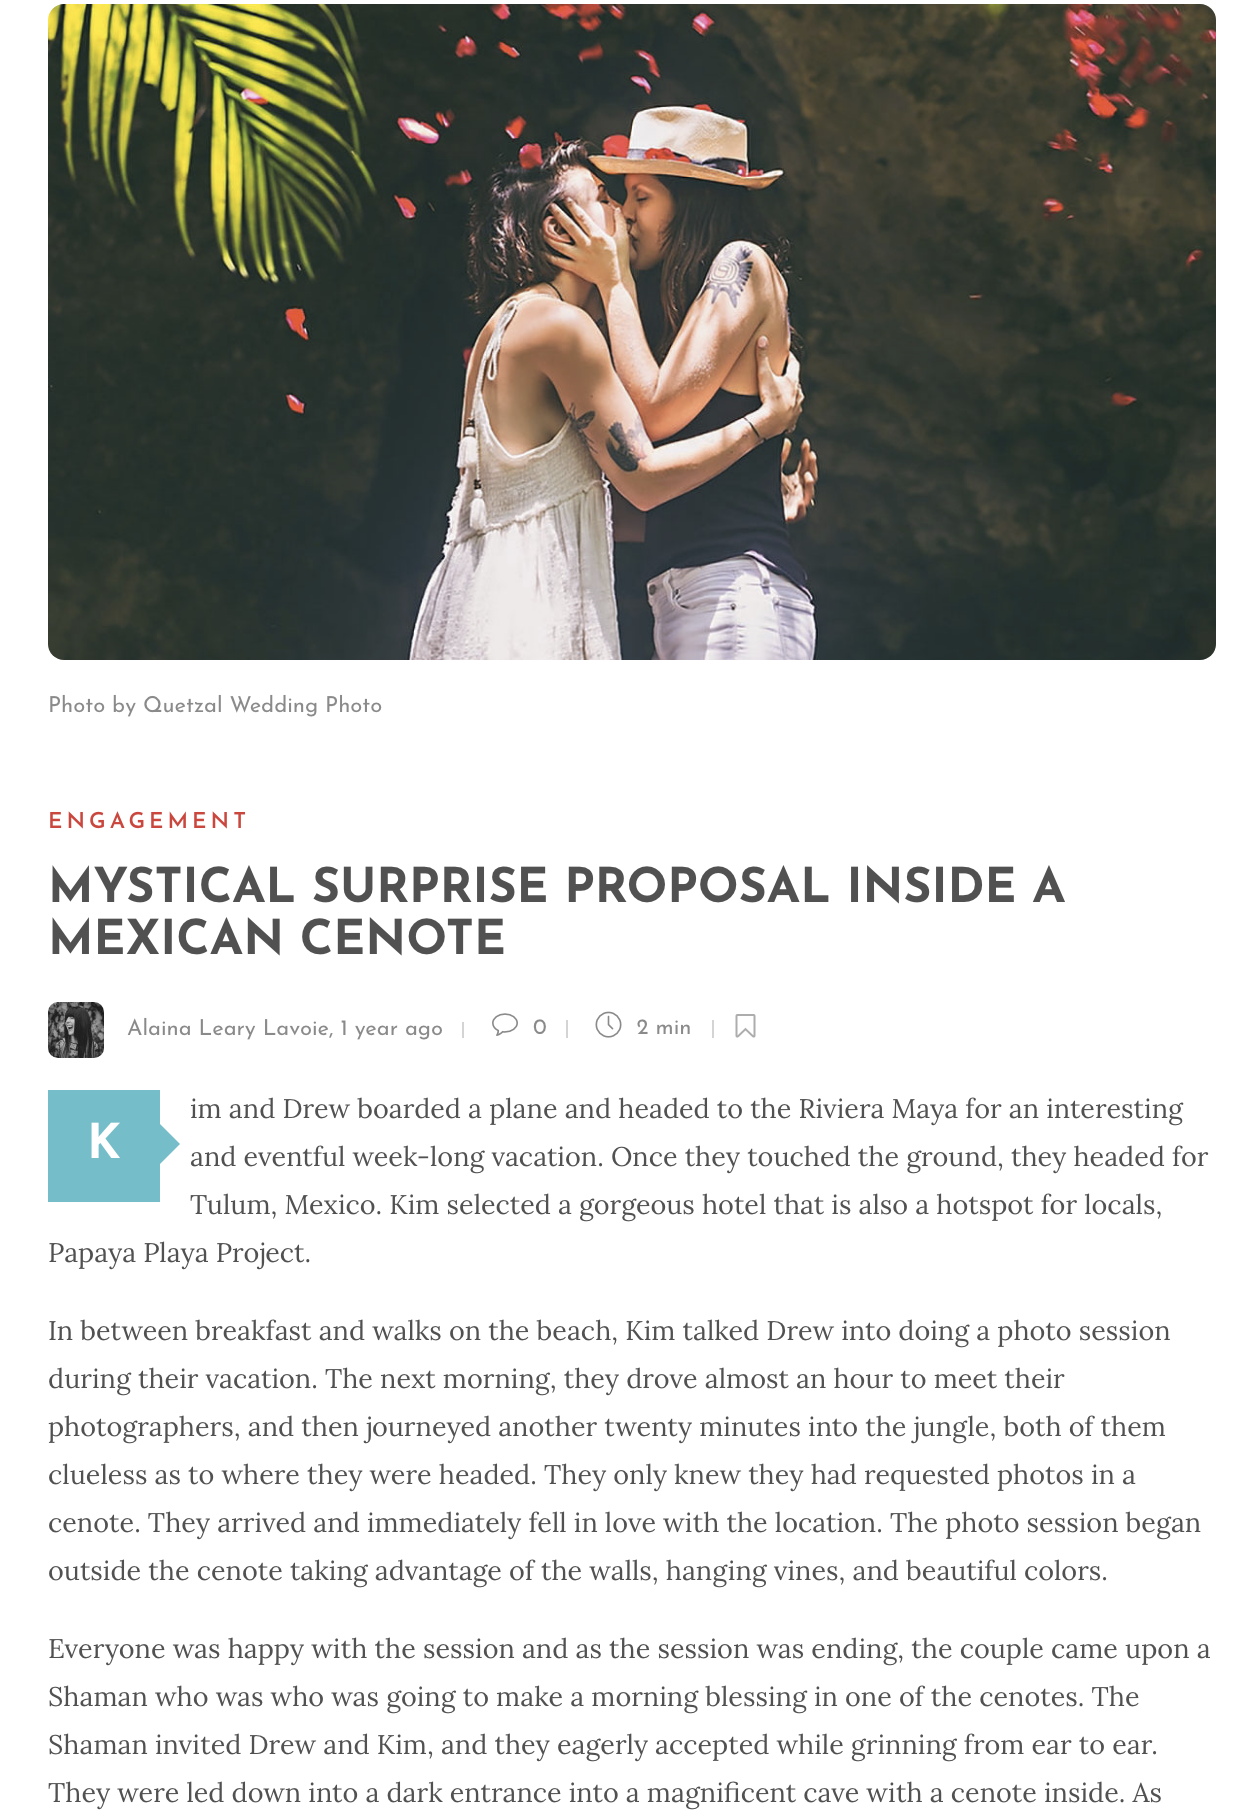 MYSTICAL SURPRISE PROPOSAL INSIDE A MEXICAN CENOTE